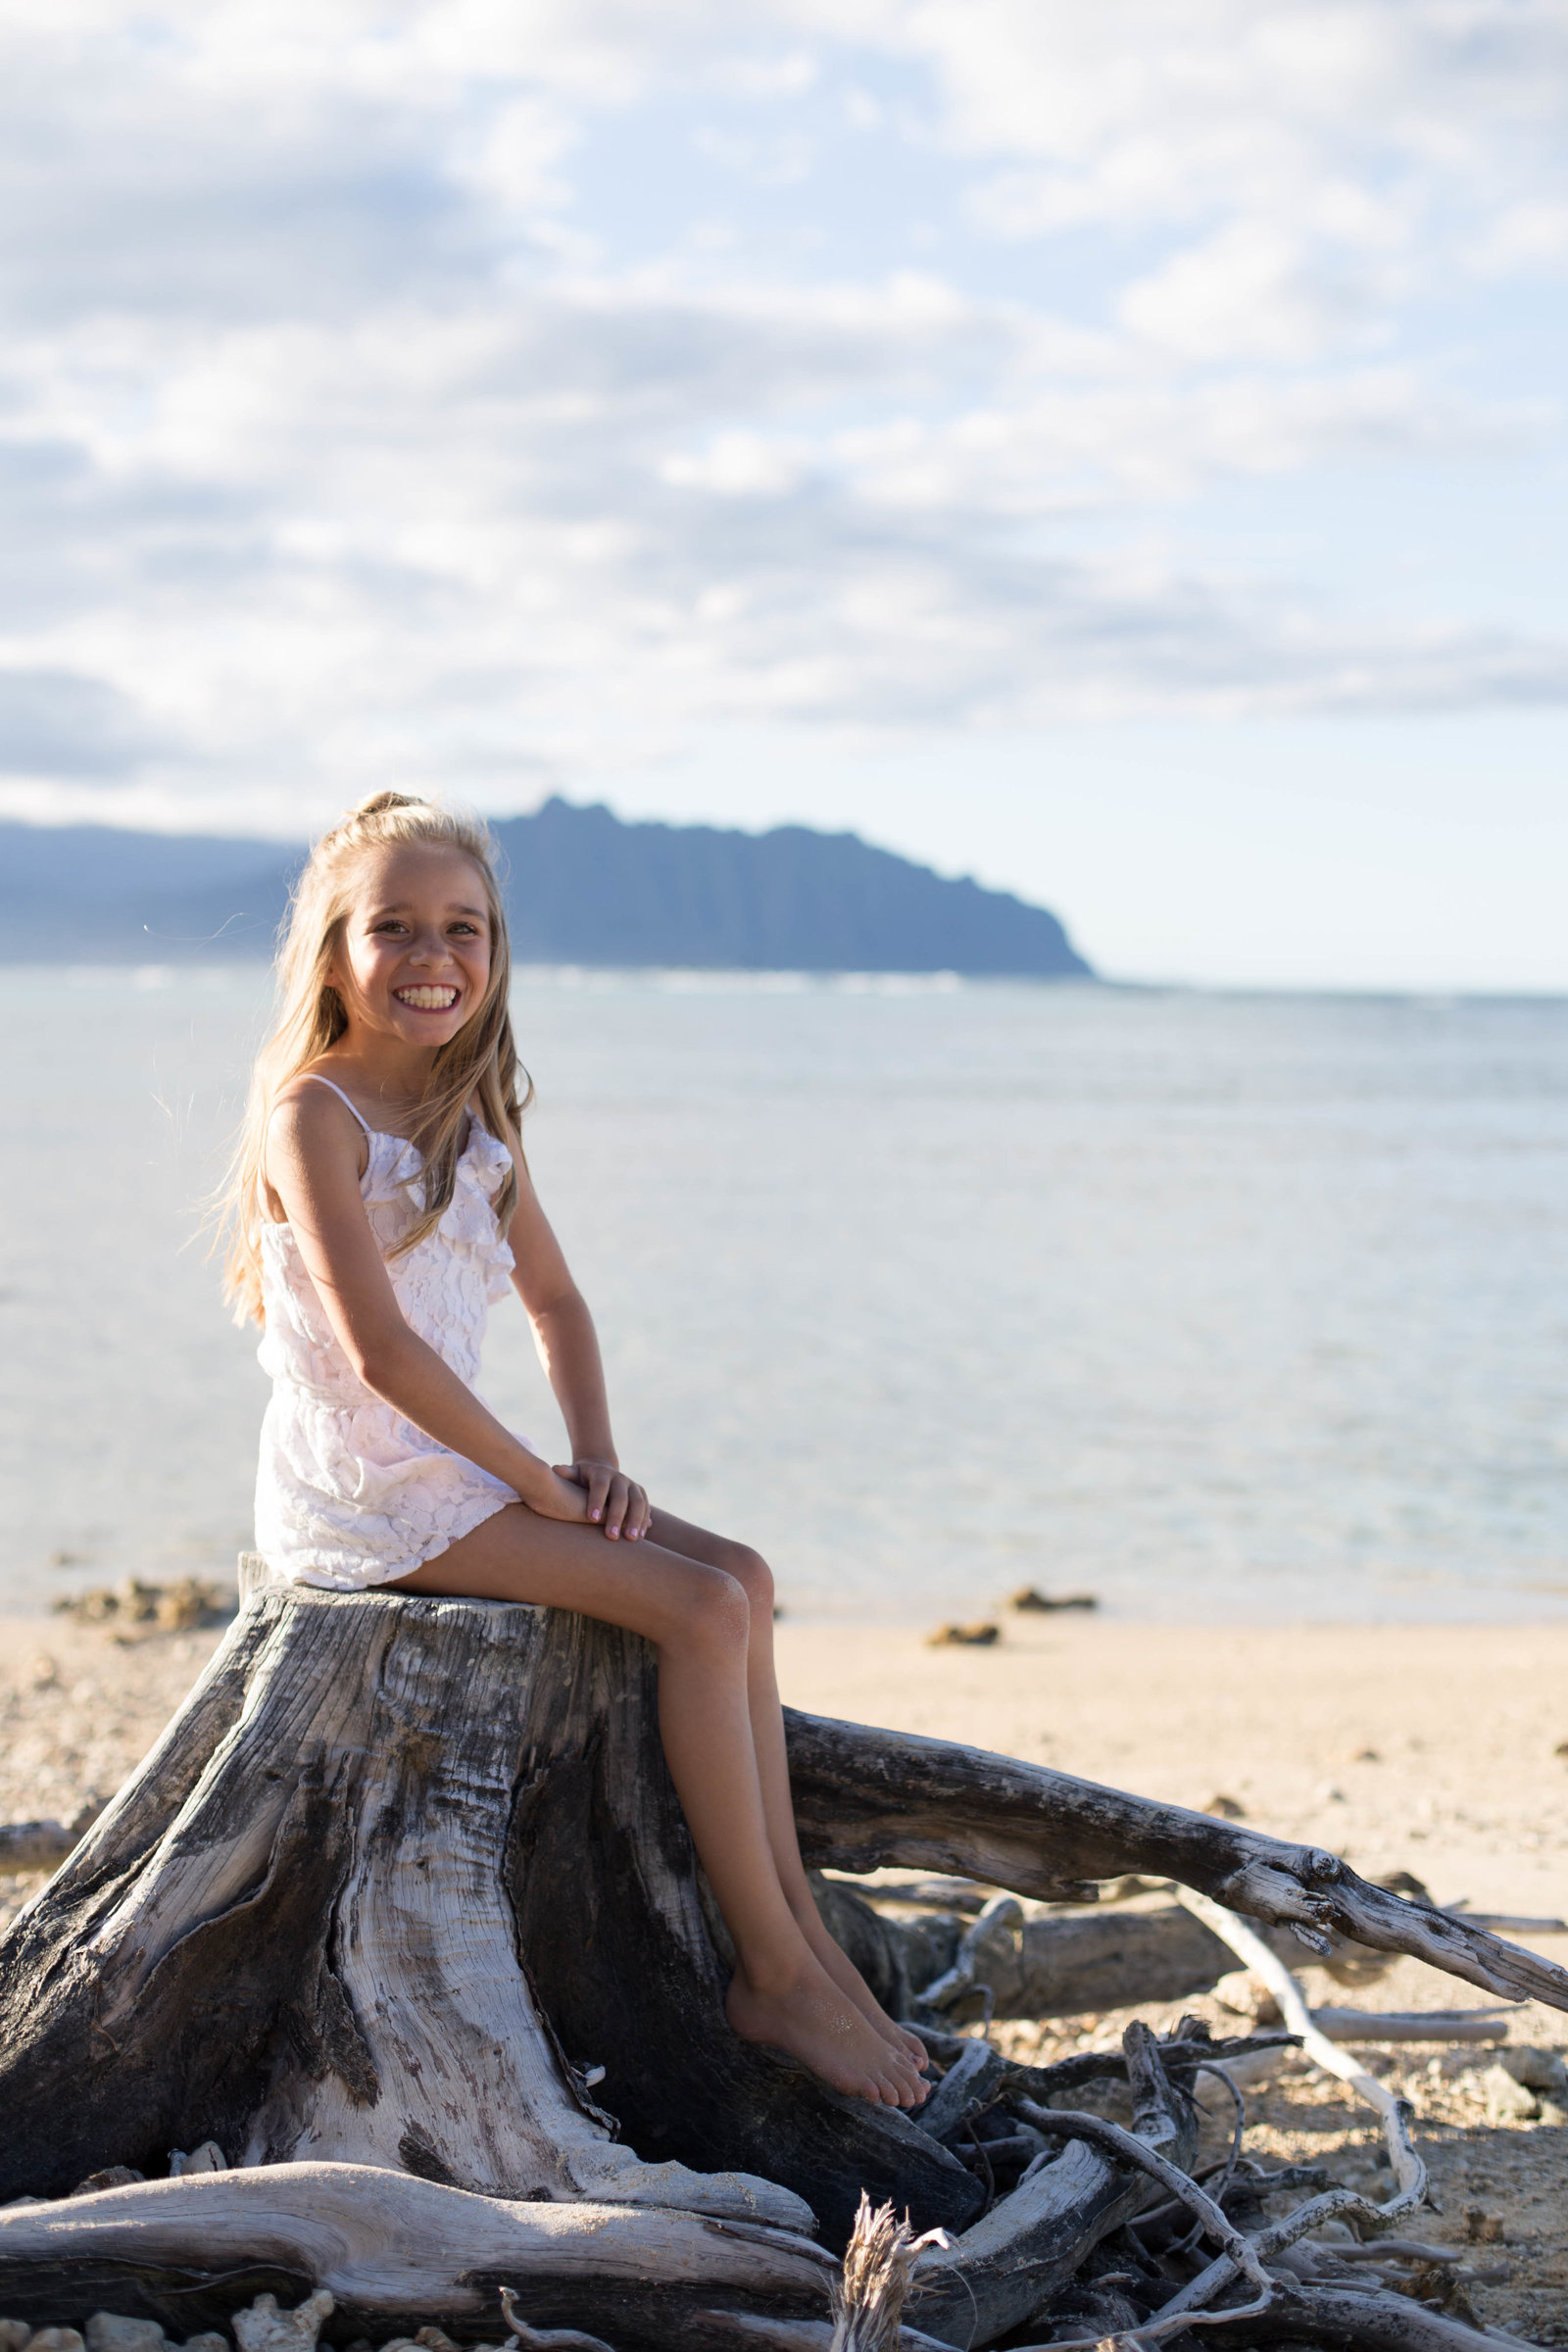 Oahu, Hawaii Lifestyle Photographer - Lifestyle Photography - Brooke Flanagan Photography - Little Girl Posing on an old stump